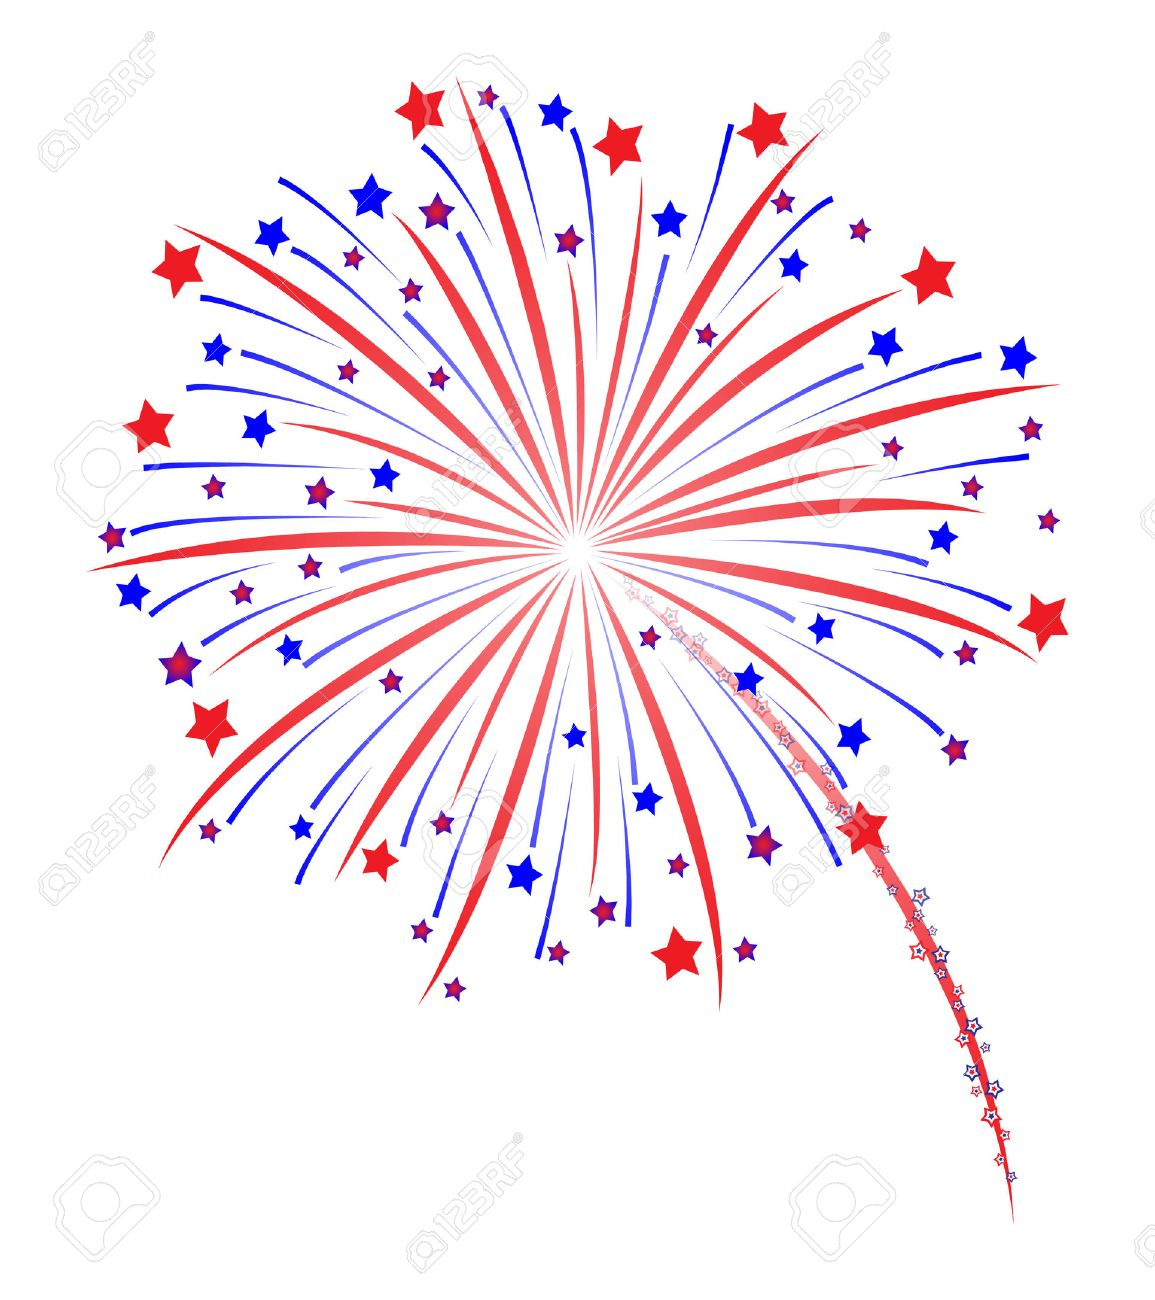 fireworks vector illustration royalty free cliparts vectors and rh 123rf com American Fireworks Shooting Fireworks